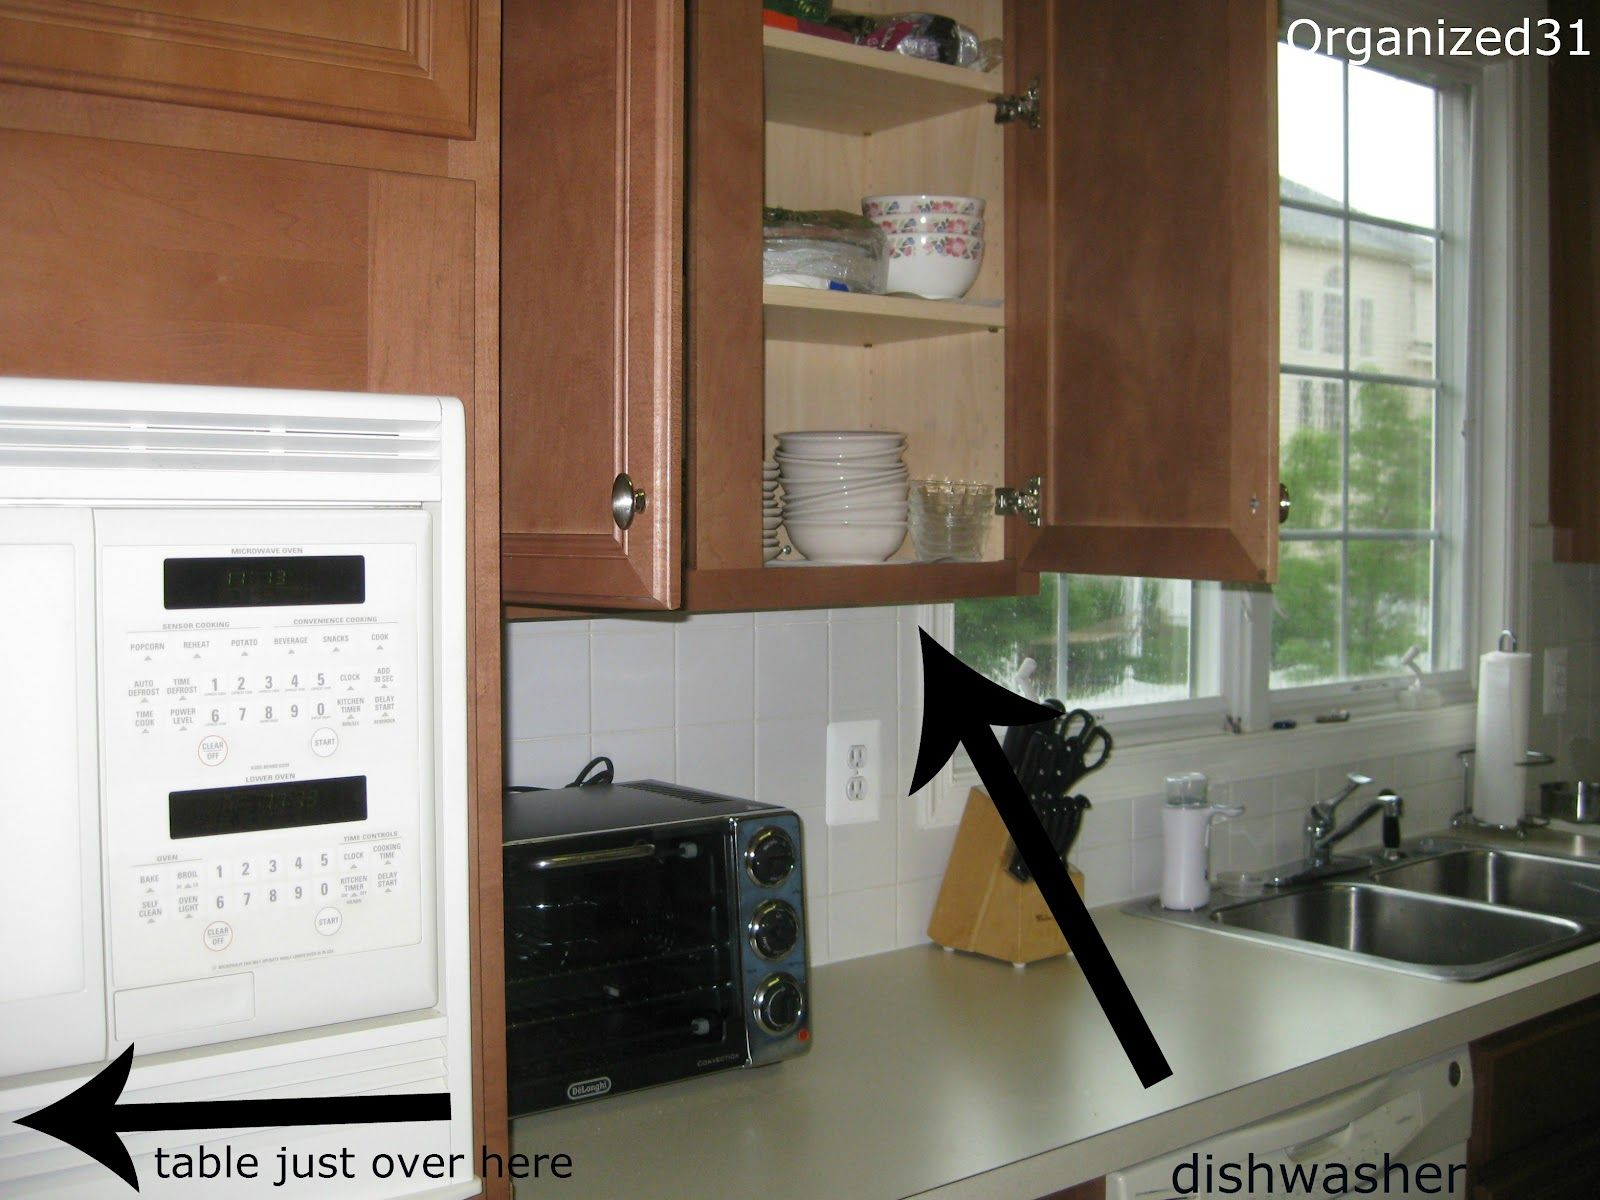 Tips on how to set up your kitchen if youre moving into a new home from a mom that has moved into and organized over 20 homes and kitchens